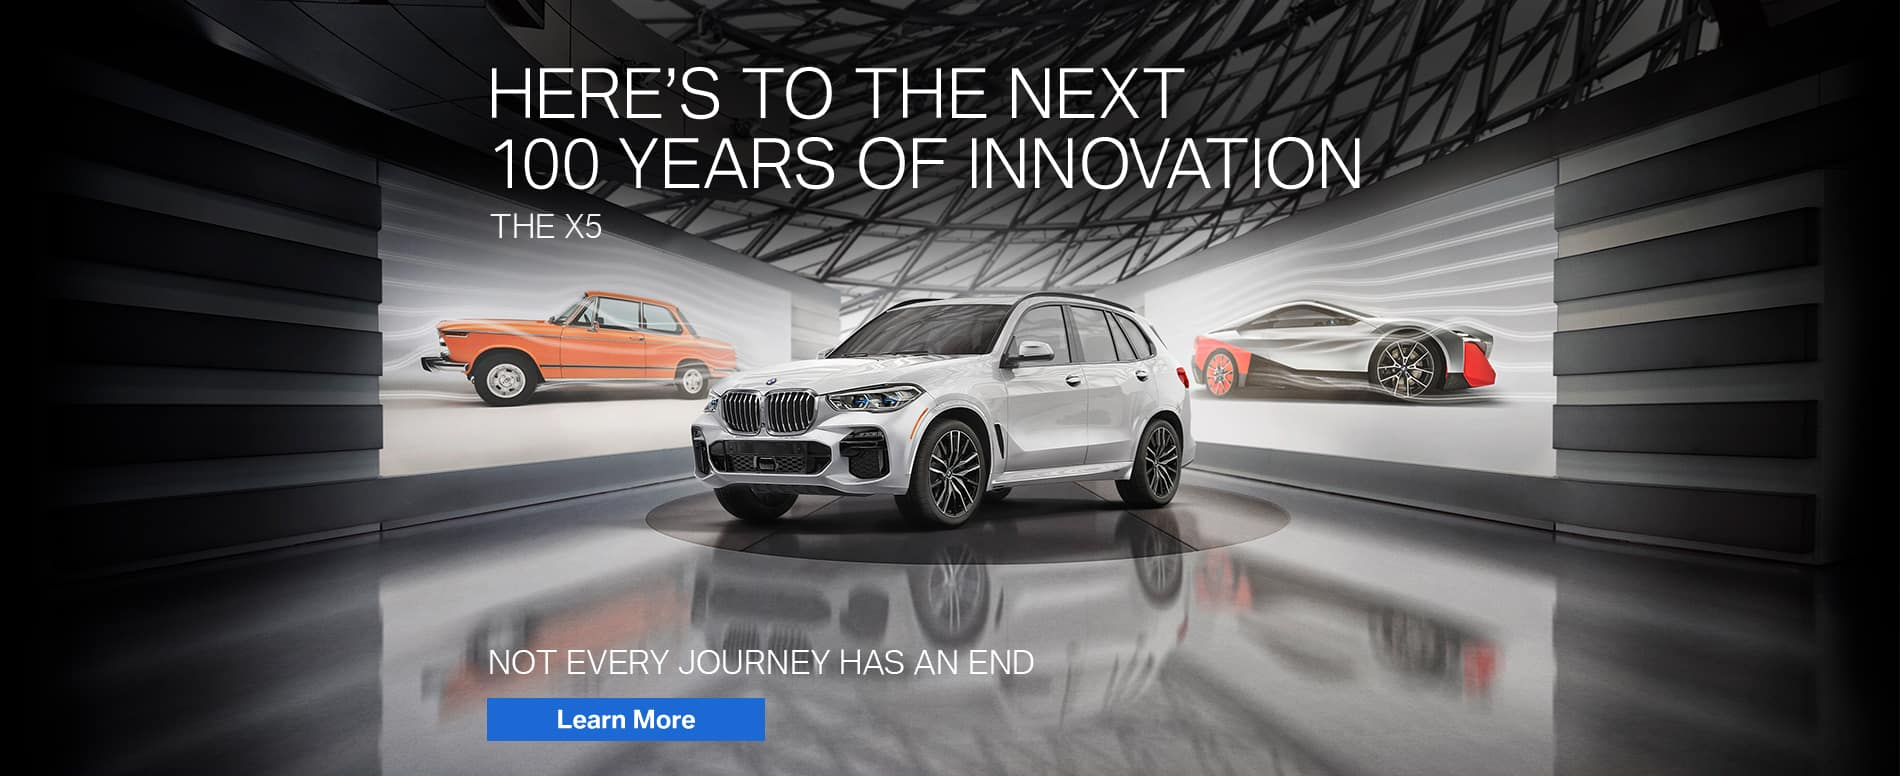 HERE'S TO THE NEXT 100 YEARS OF INNOVATION - X5